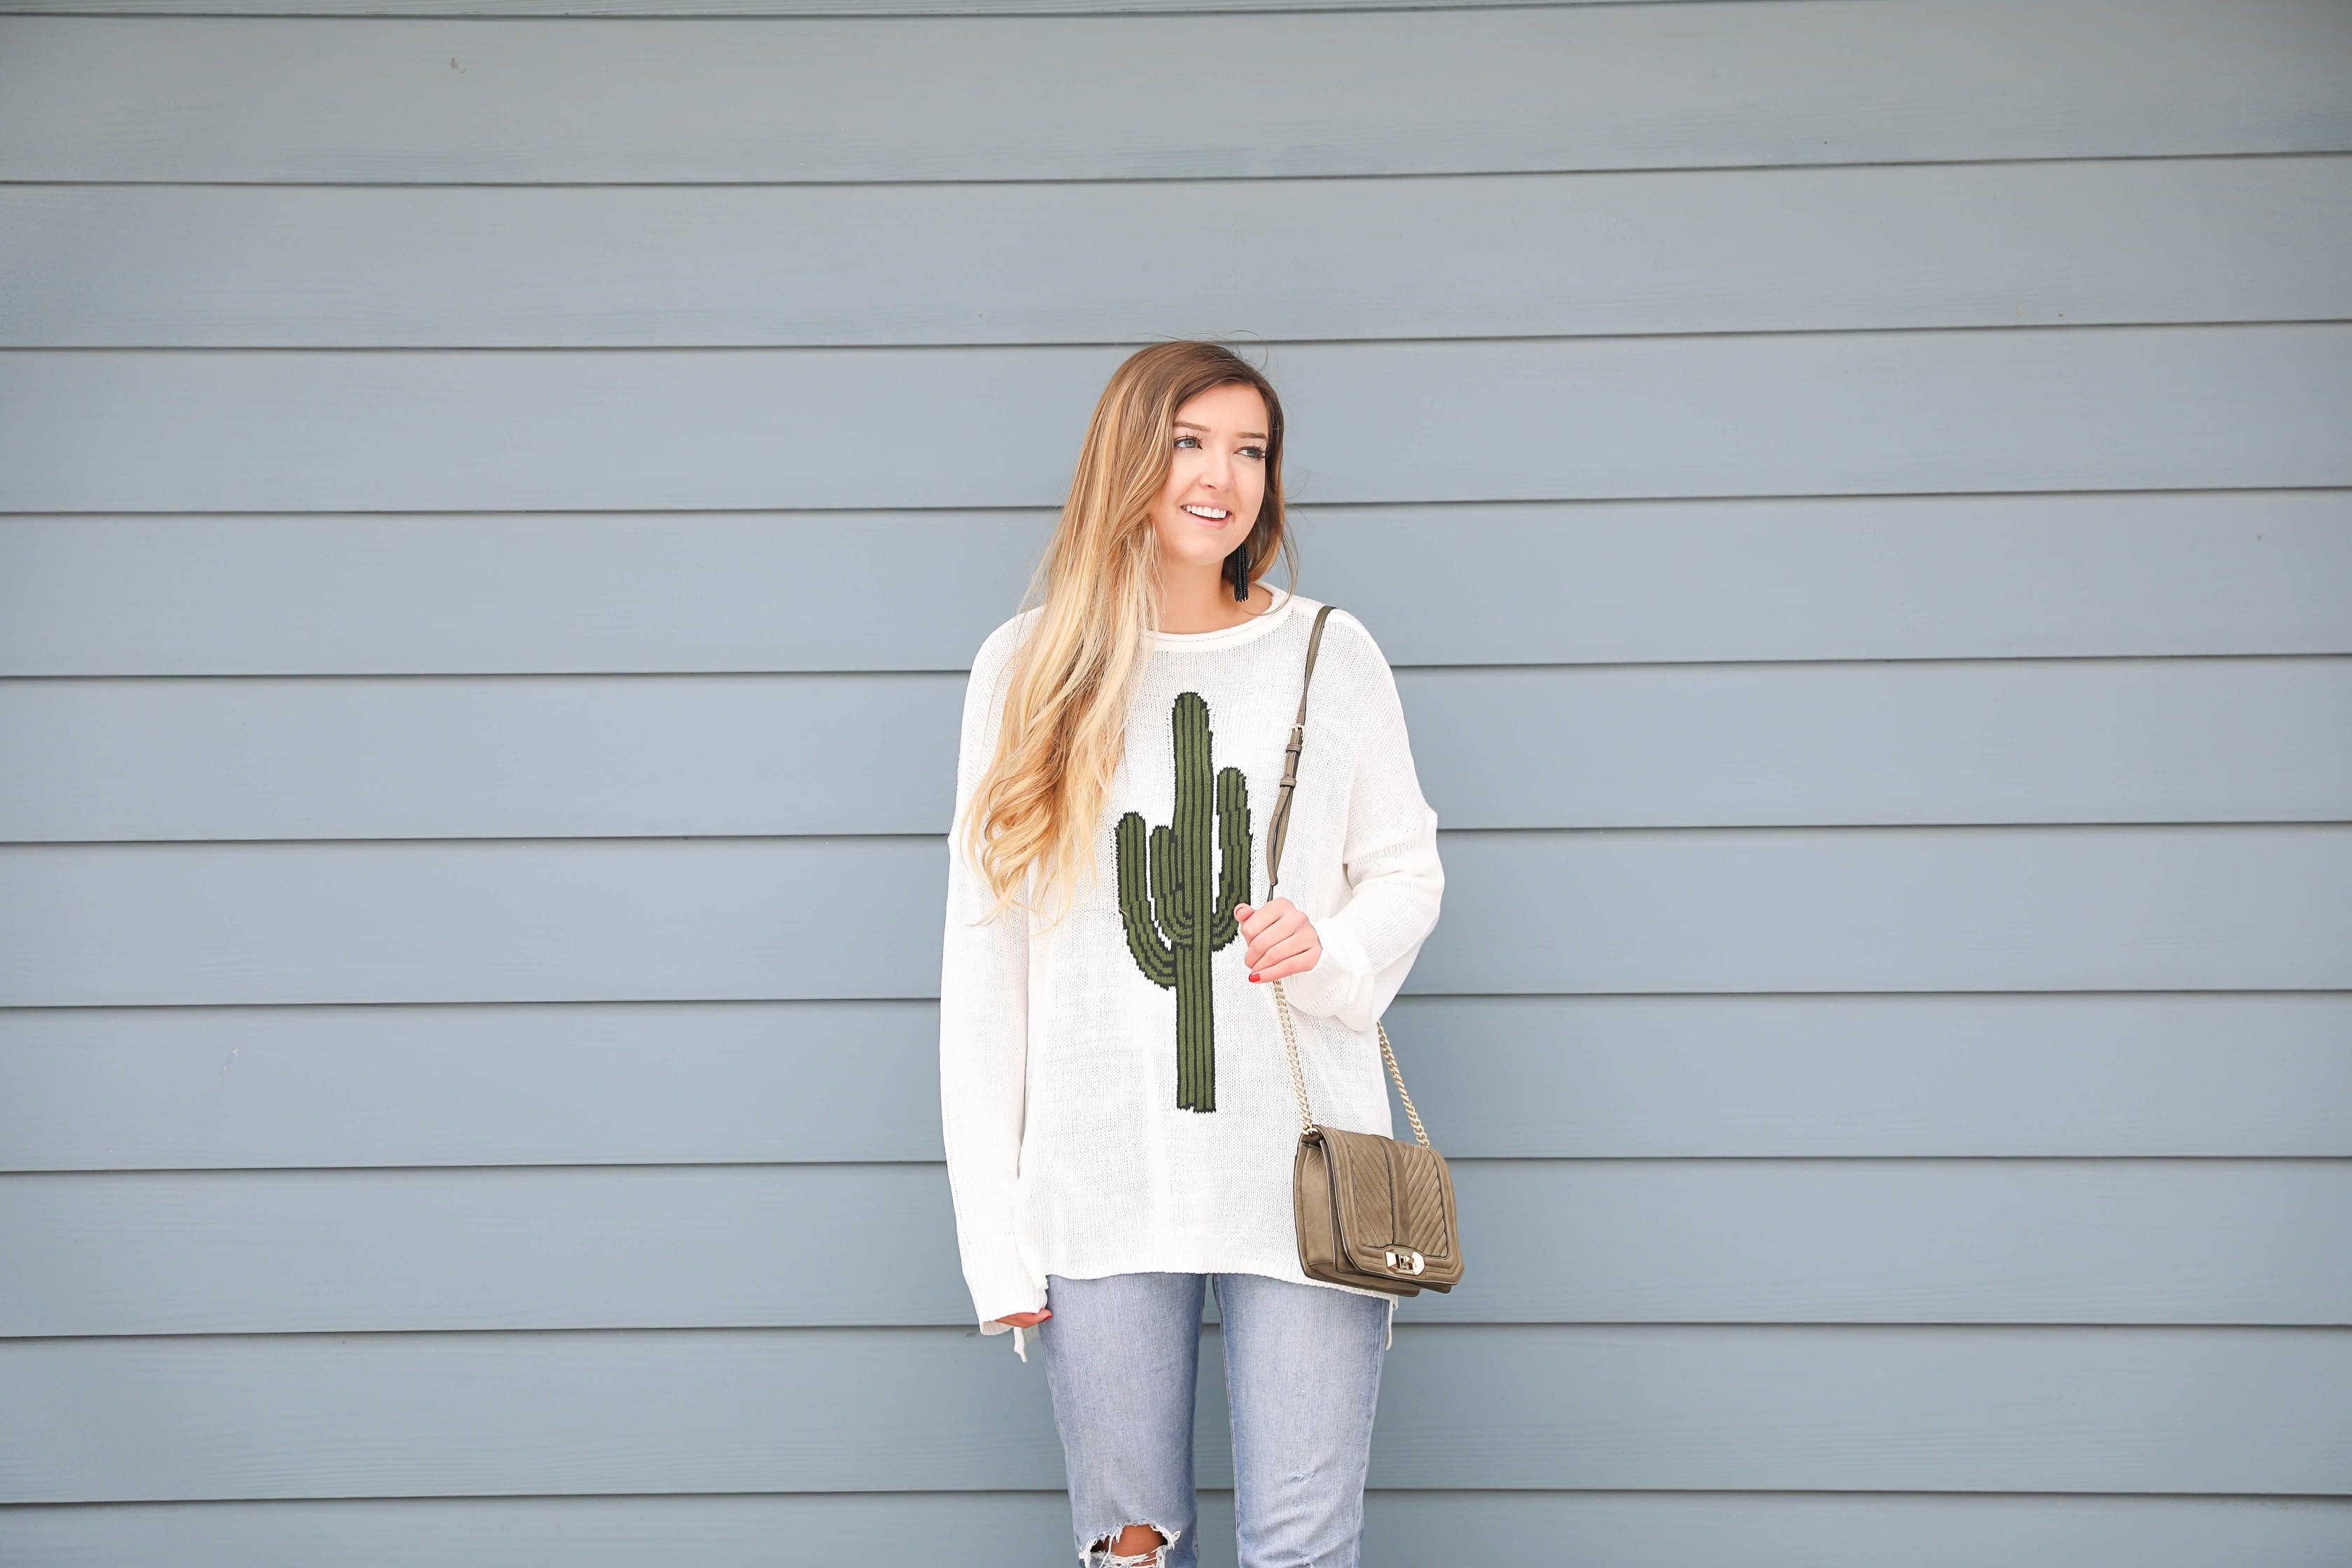 Super cute cactus sweater for spring and summer! This sweater is by Show Me Your Mumu. I love their spring cactus line, but this cactus sweater is my favorite! I paired it with booties, a black belt, and a Rebecca Minkoff bag! Perfect spring outfit inspiration on fashion blog daily dose of charm by lauren lindmark